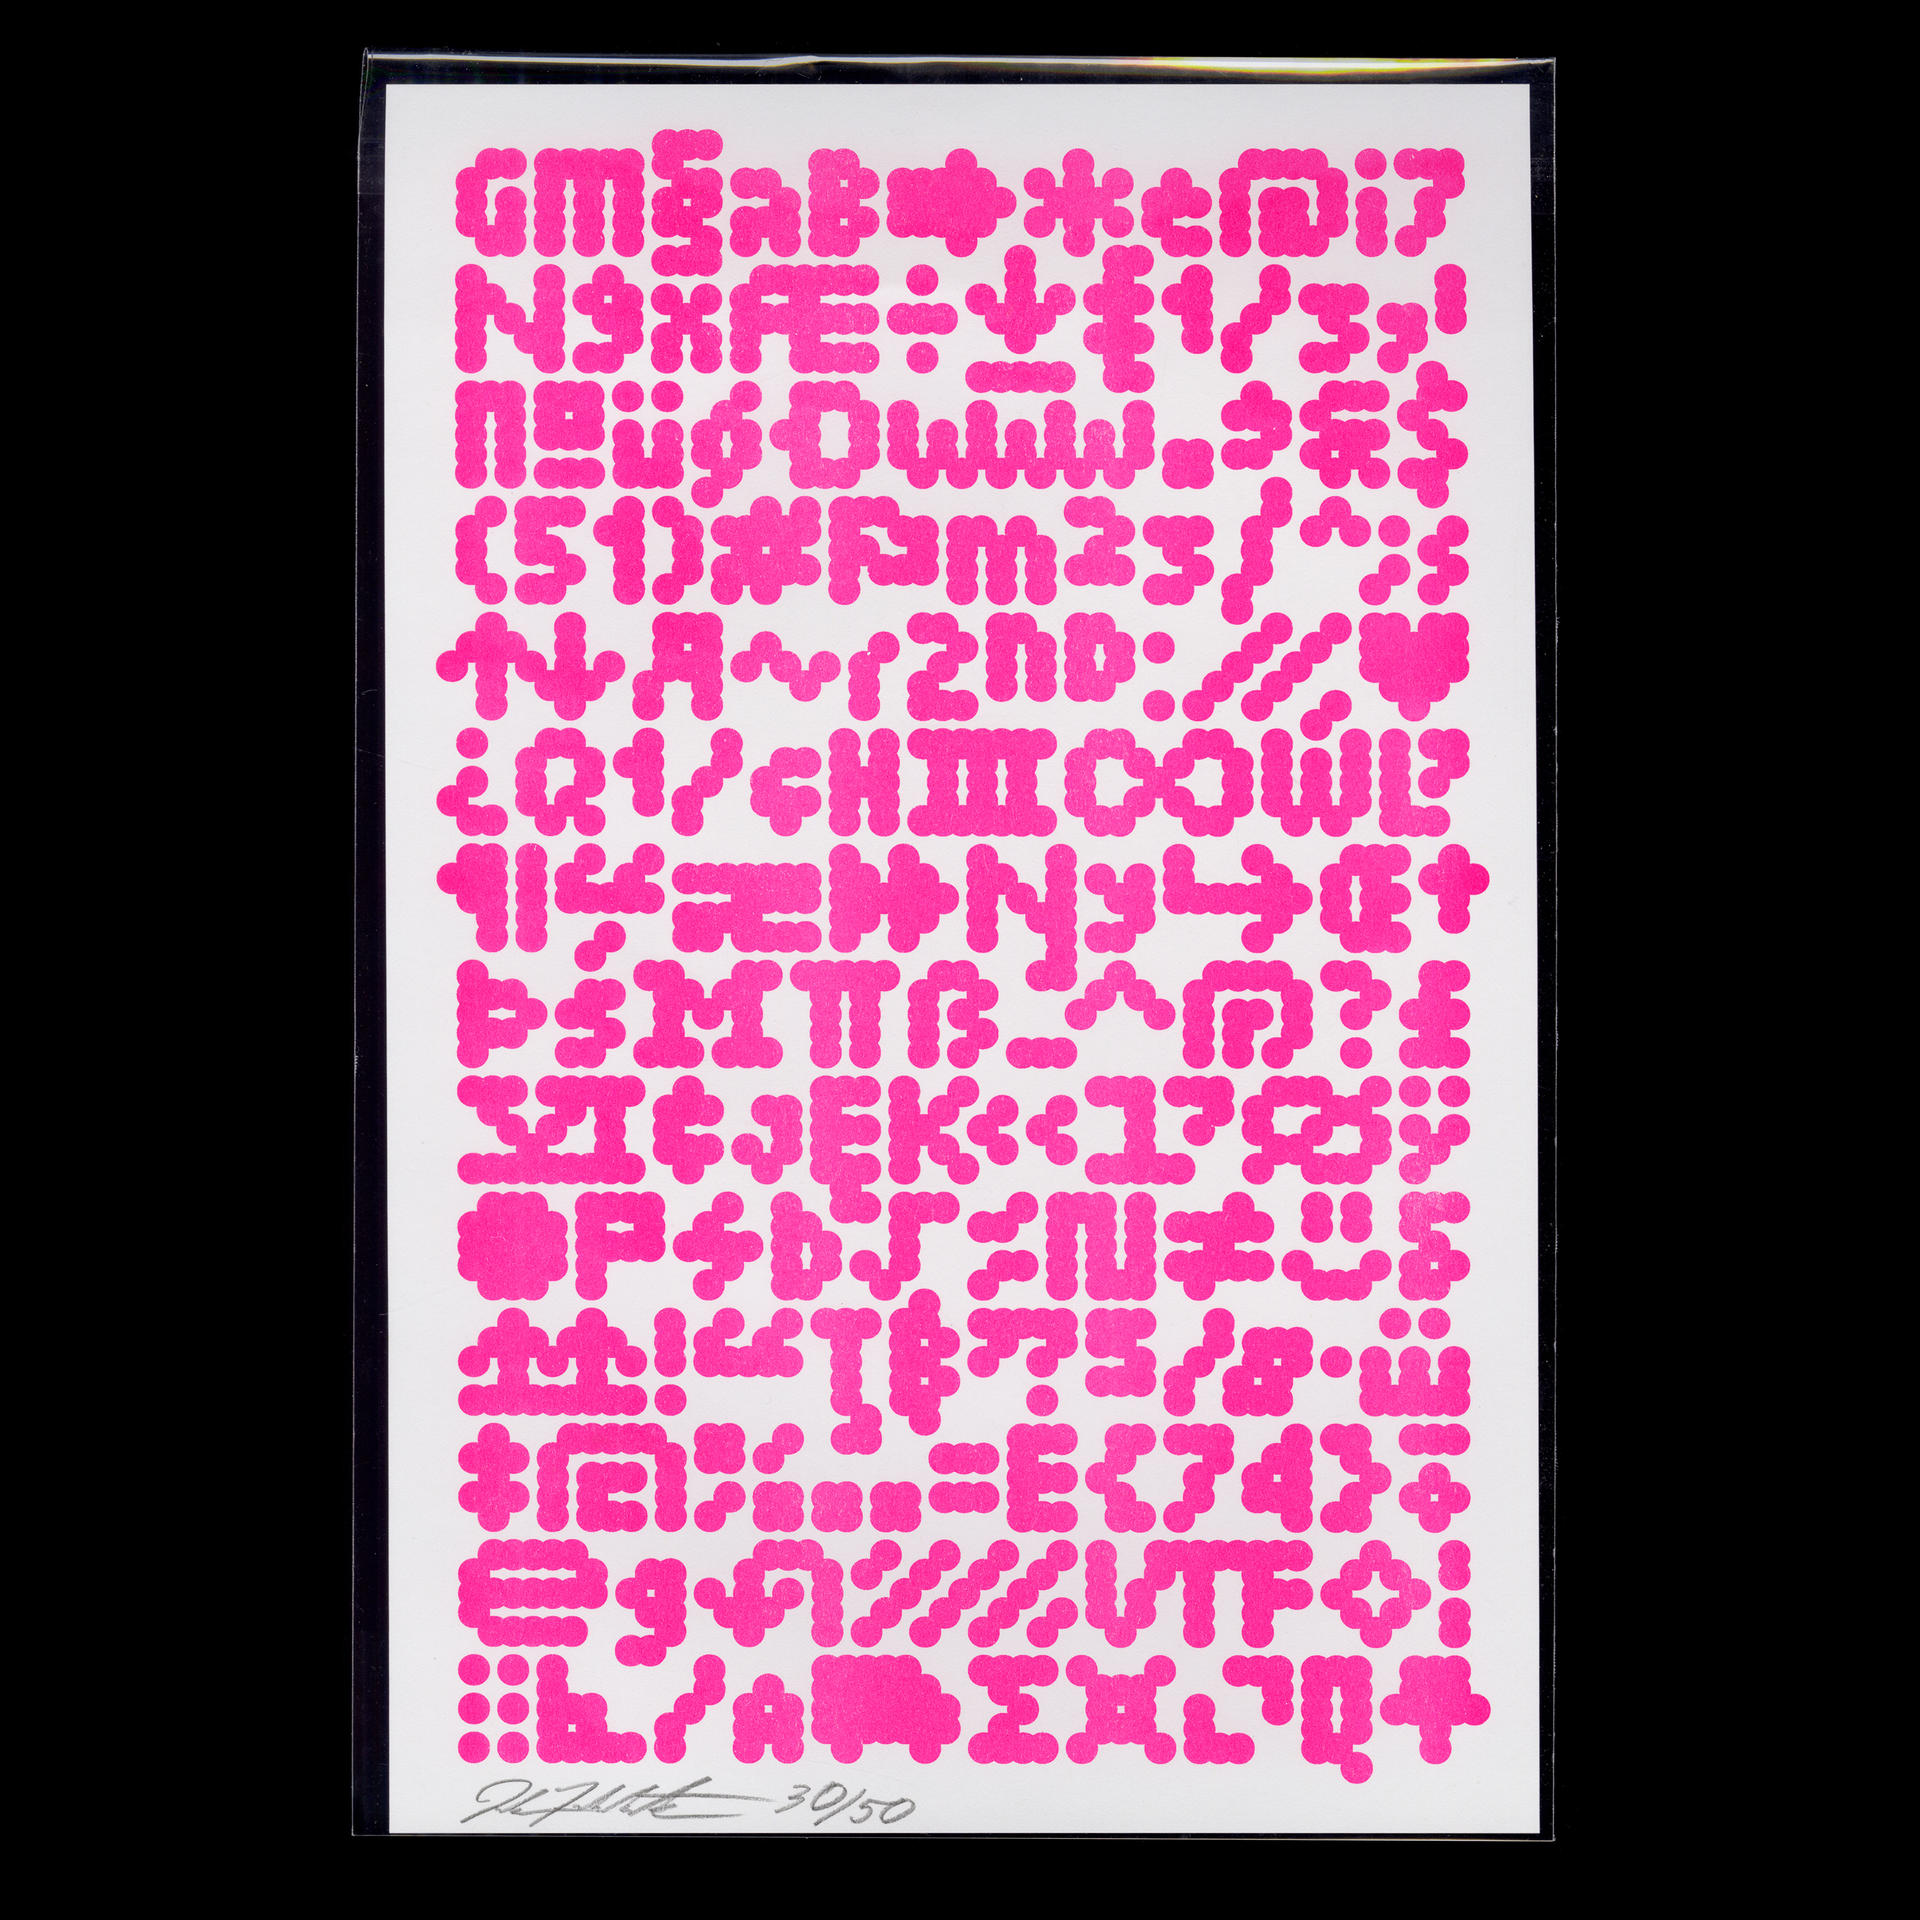 Specimen poster for TINY (Today In New York), an open-source font